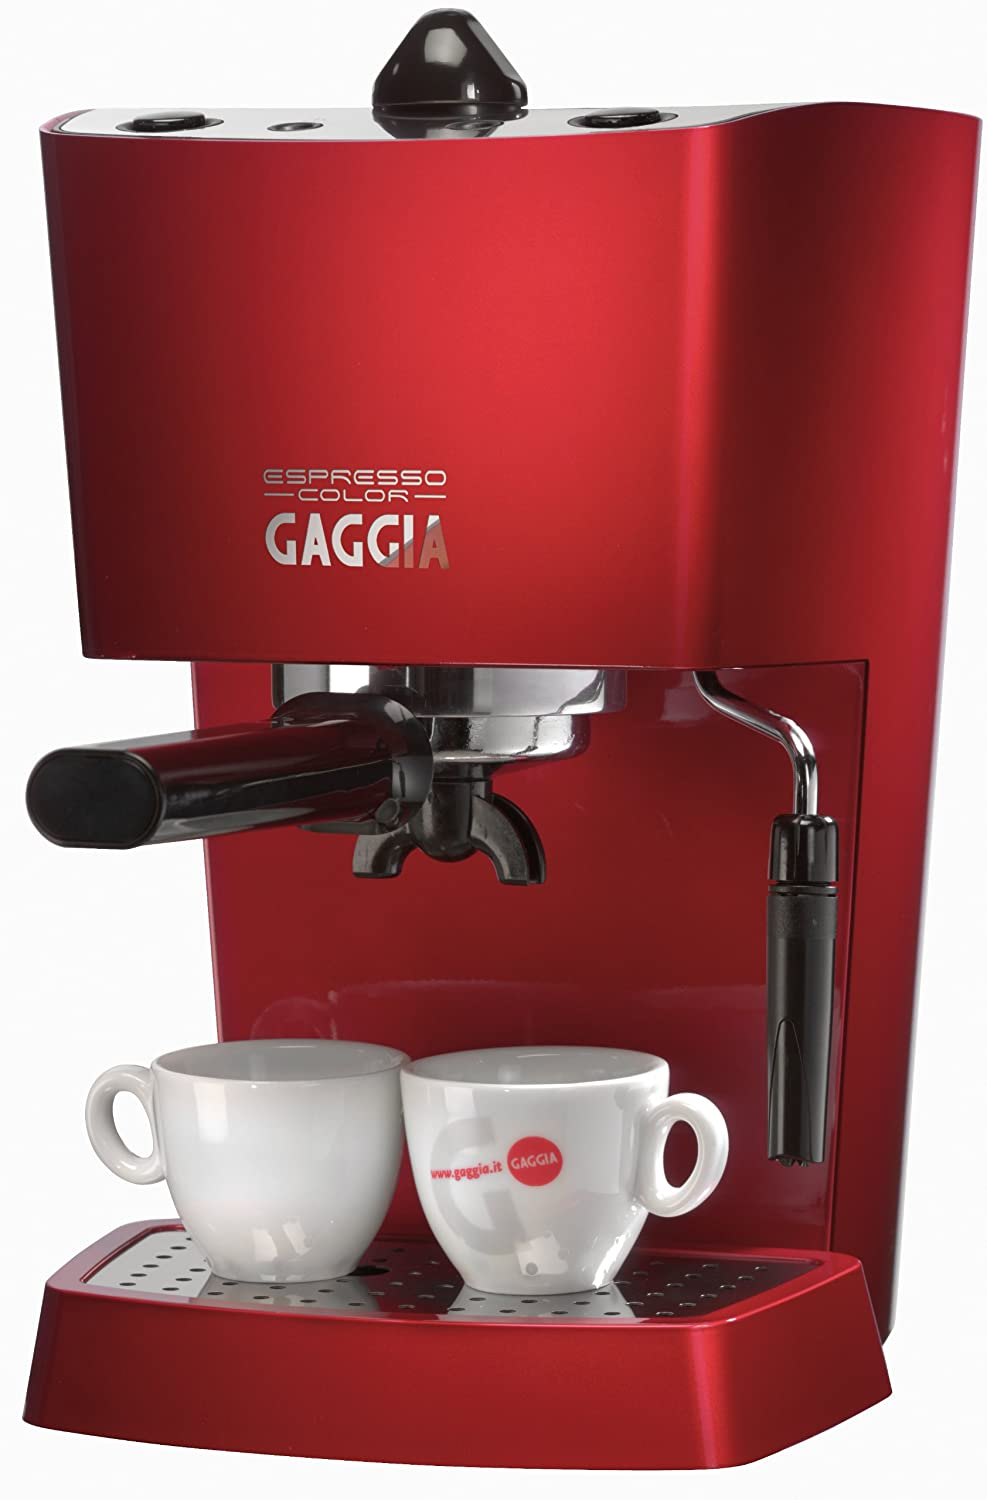 Gaggia Bean To Cup Coffee Maker : Gaggia Espresso Pure Coffee Machine Deep Red - RI8154/80 74841 eBay